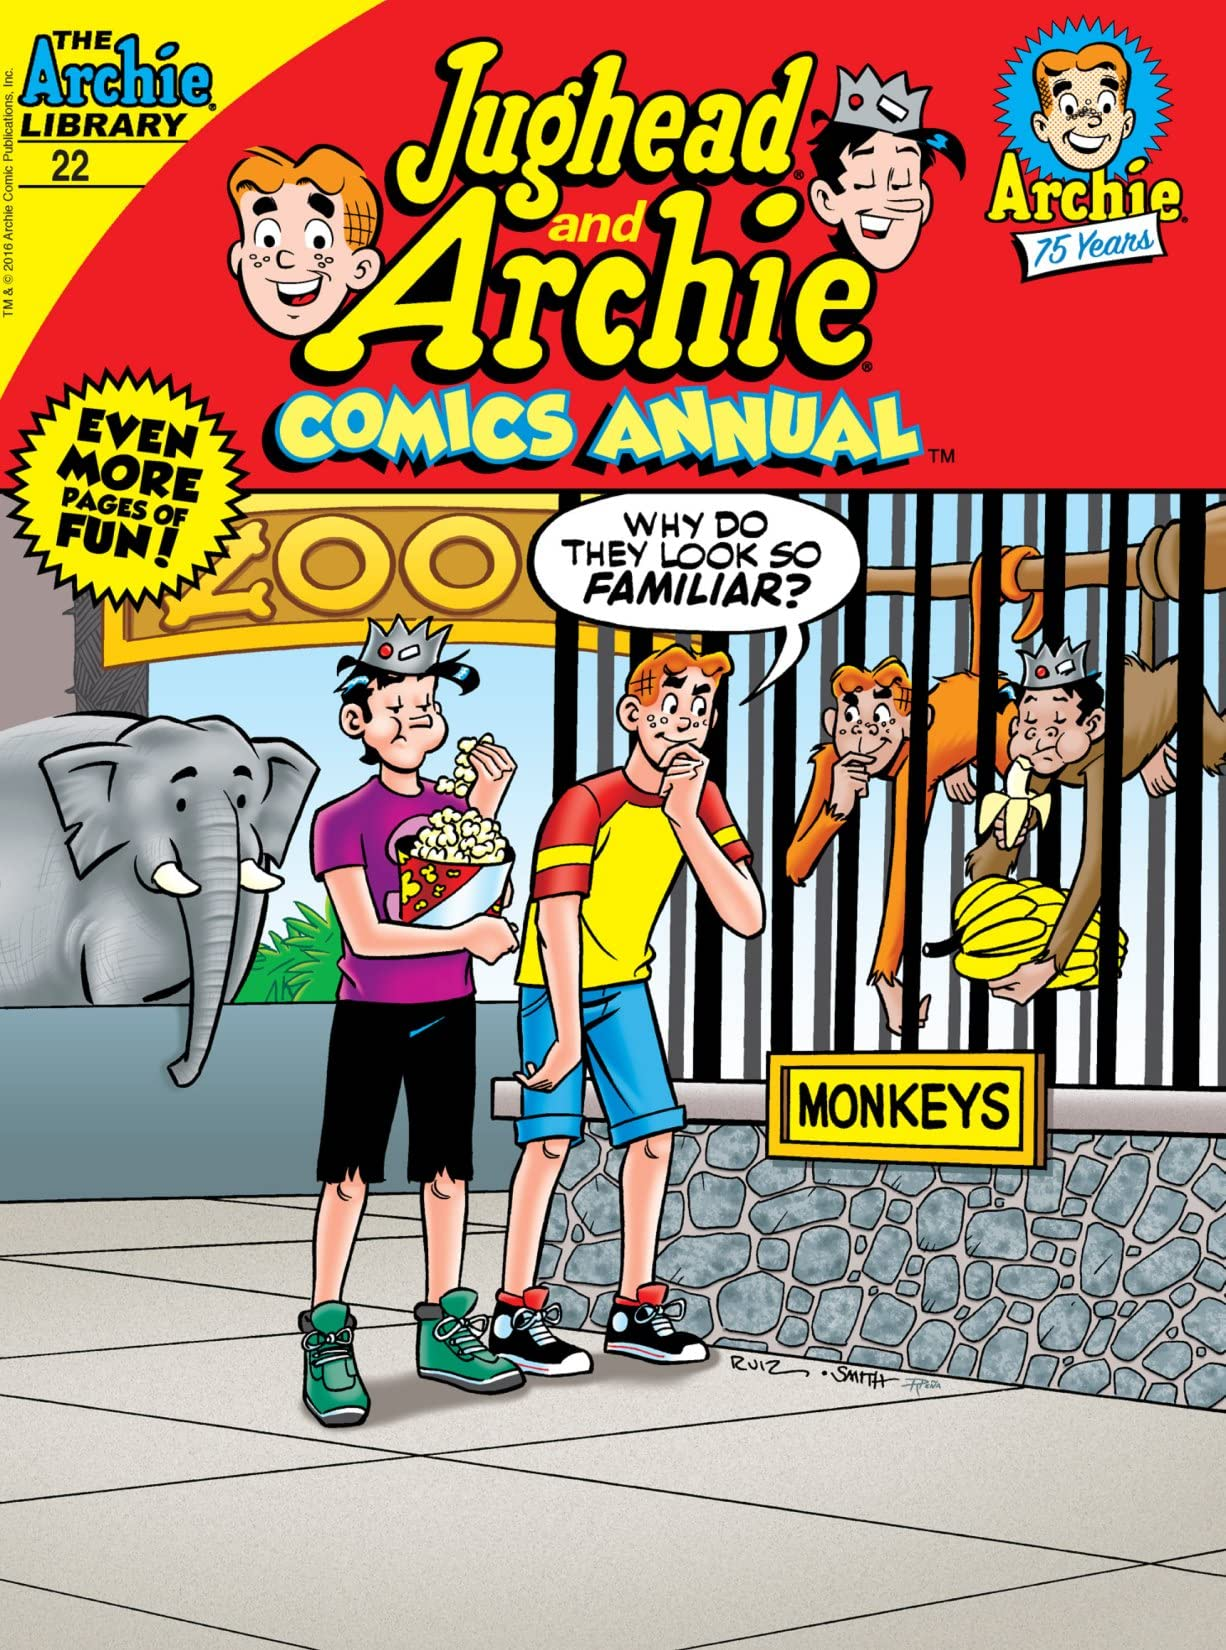 Jughead and Archie Comics Double Digest #22